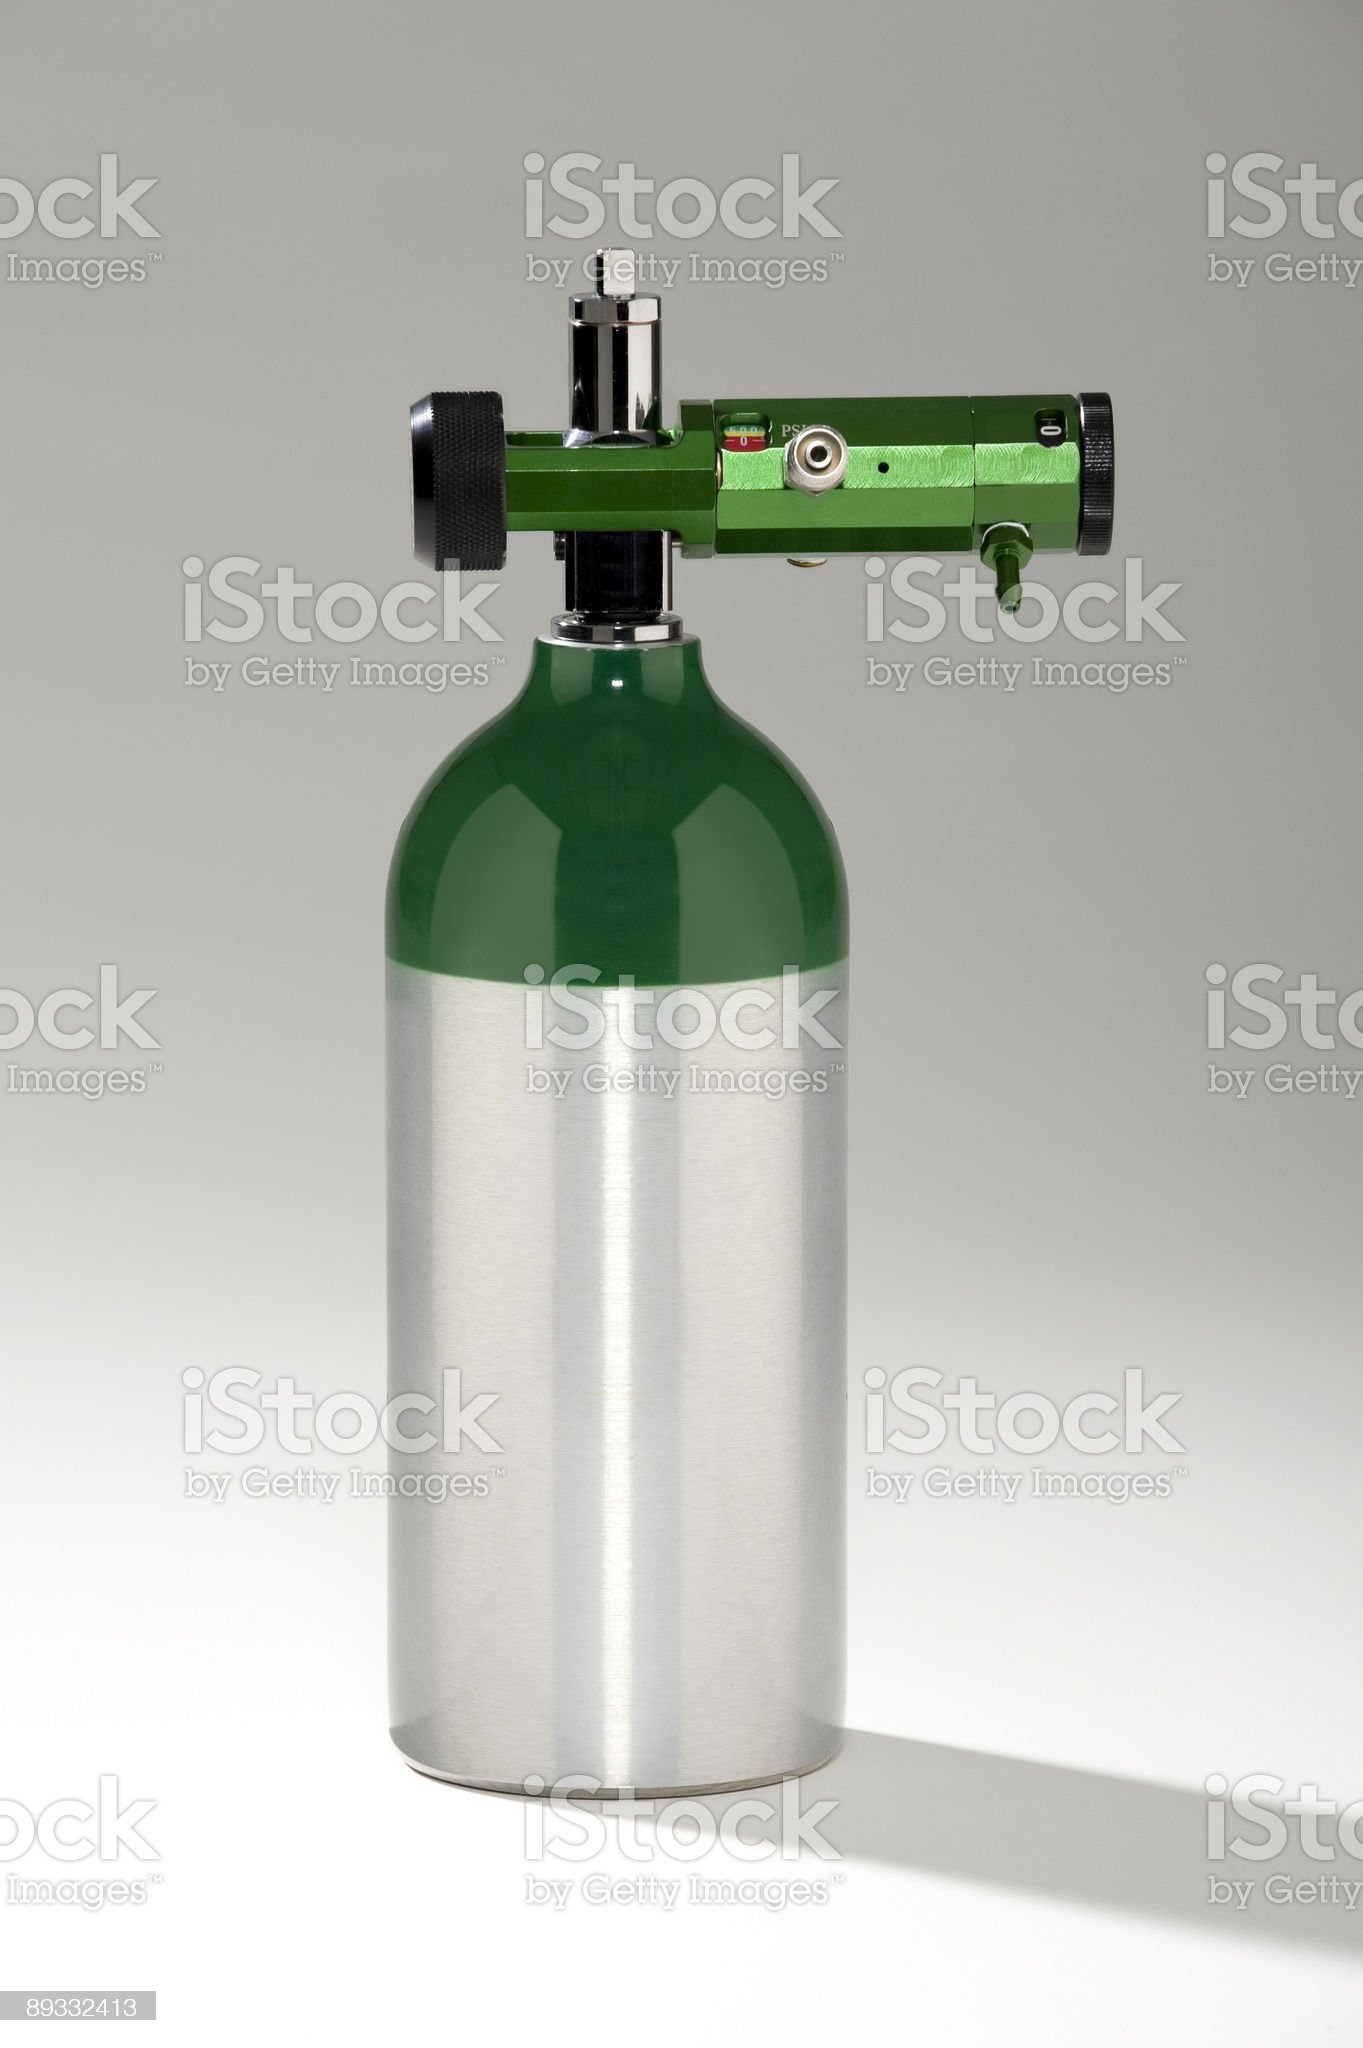 Medical Oxygen Tank royalty-free stock photo